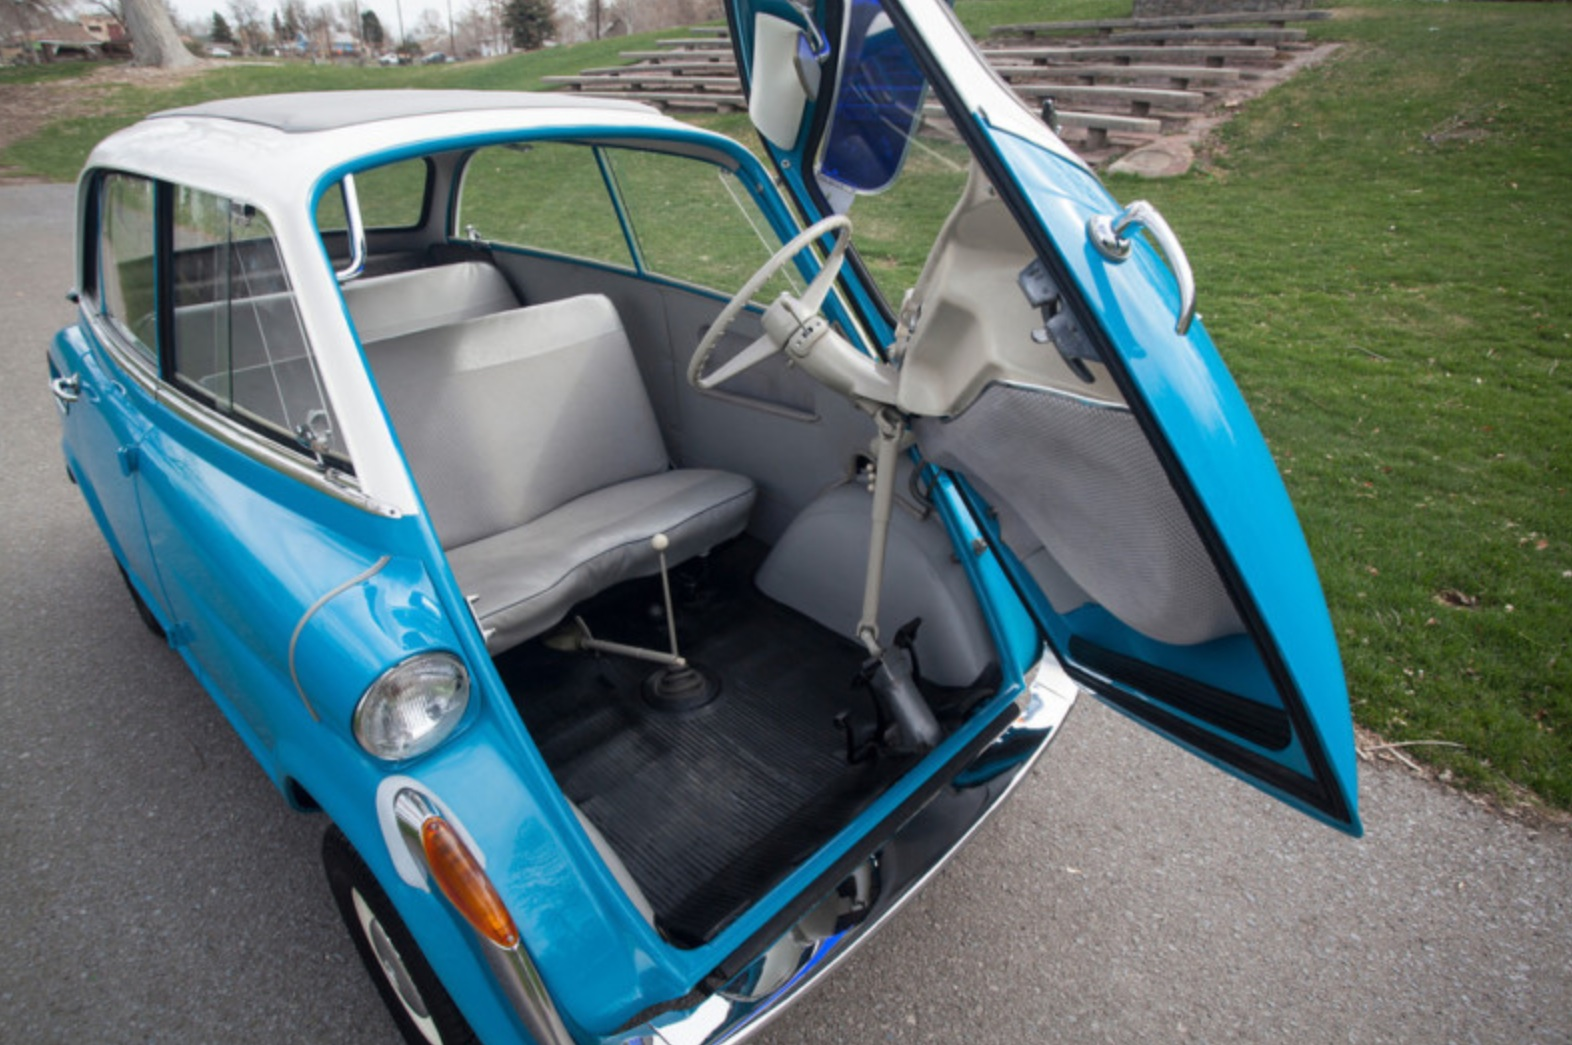 Like The Amphicar And Volkswagen Bus Bubble Cars Have Become More Valuable Than One Would Think At First Some Well Red Isettas Brought Strong